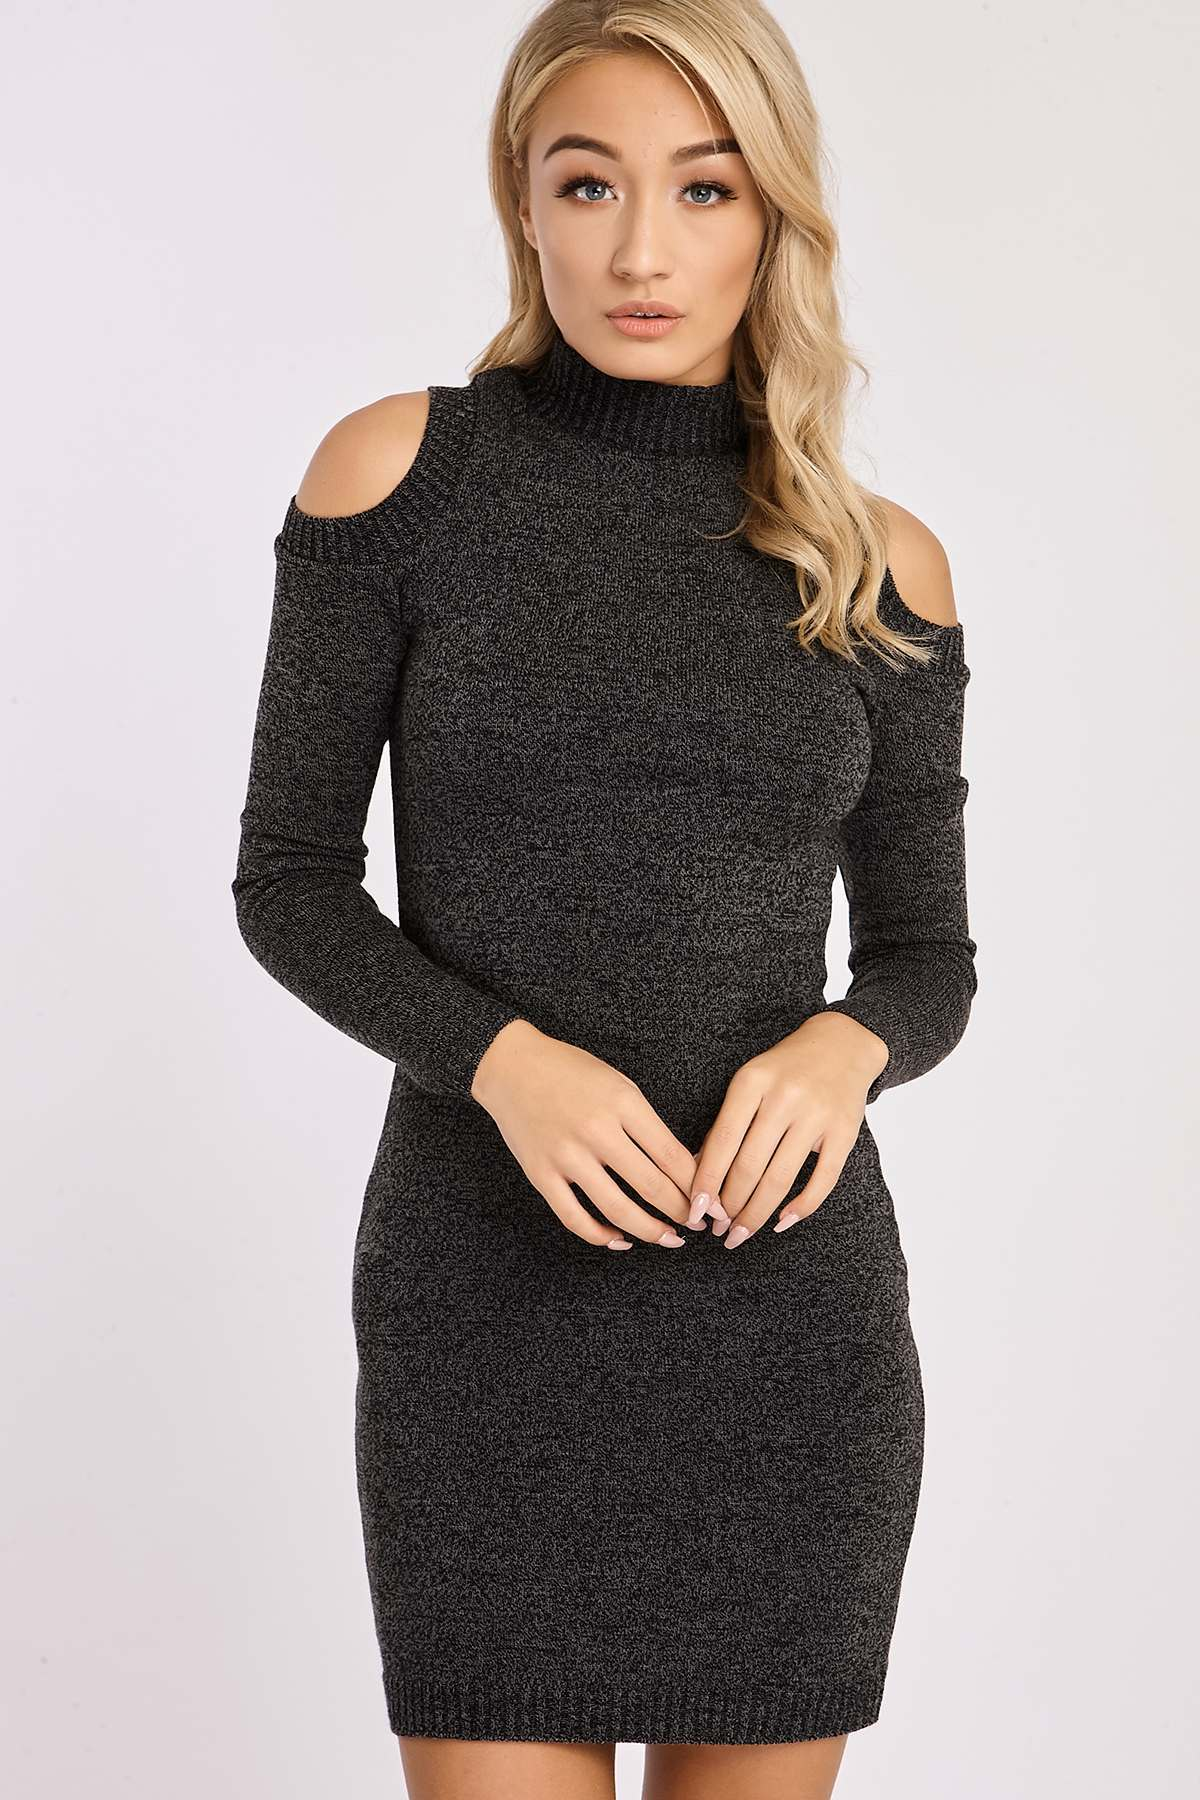 Charcoal Dresses  Adeline Charcoal Knitted Cold Shoulder Dress